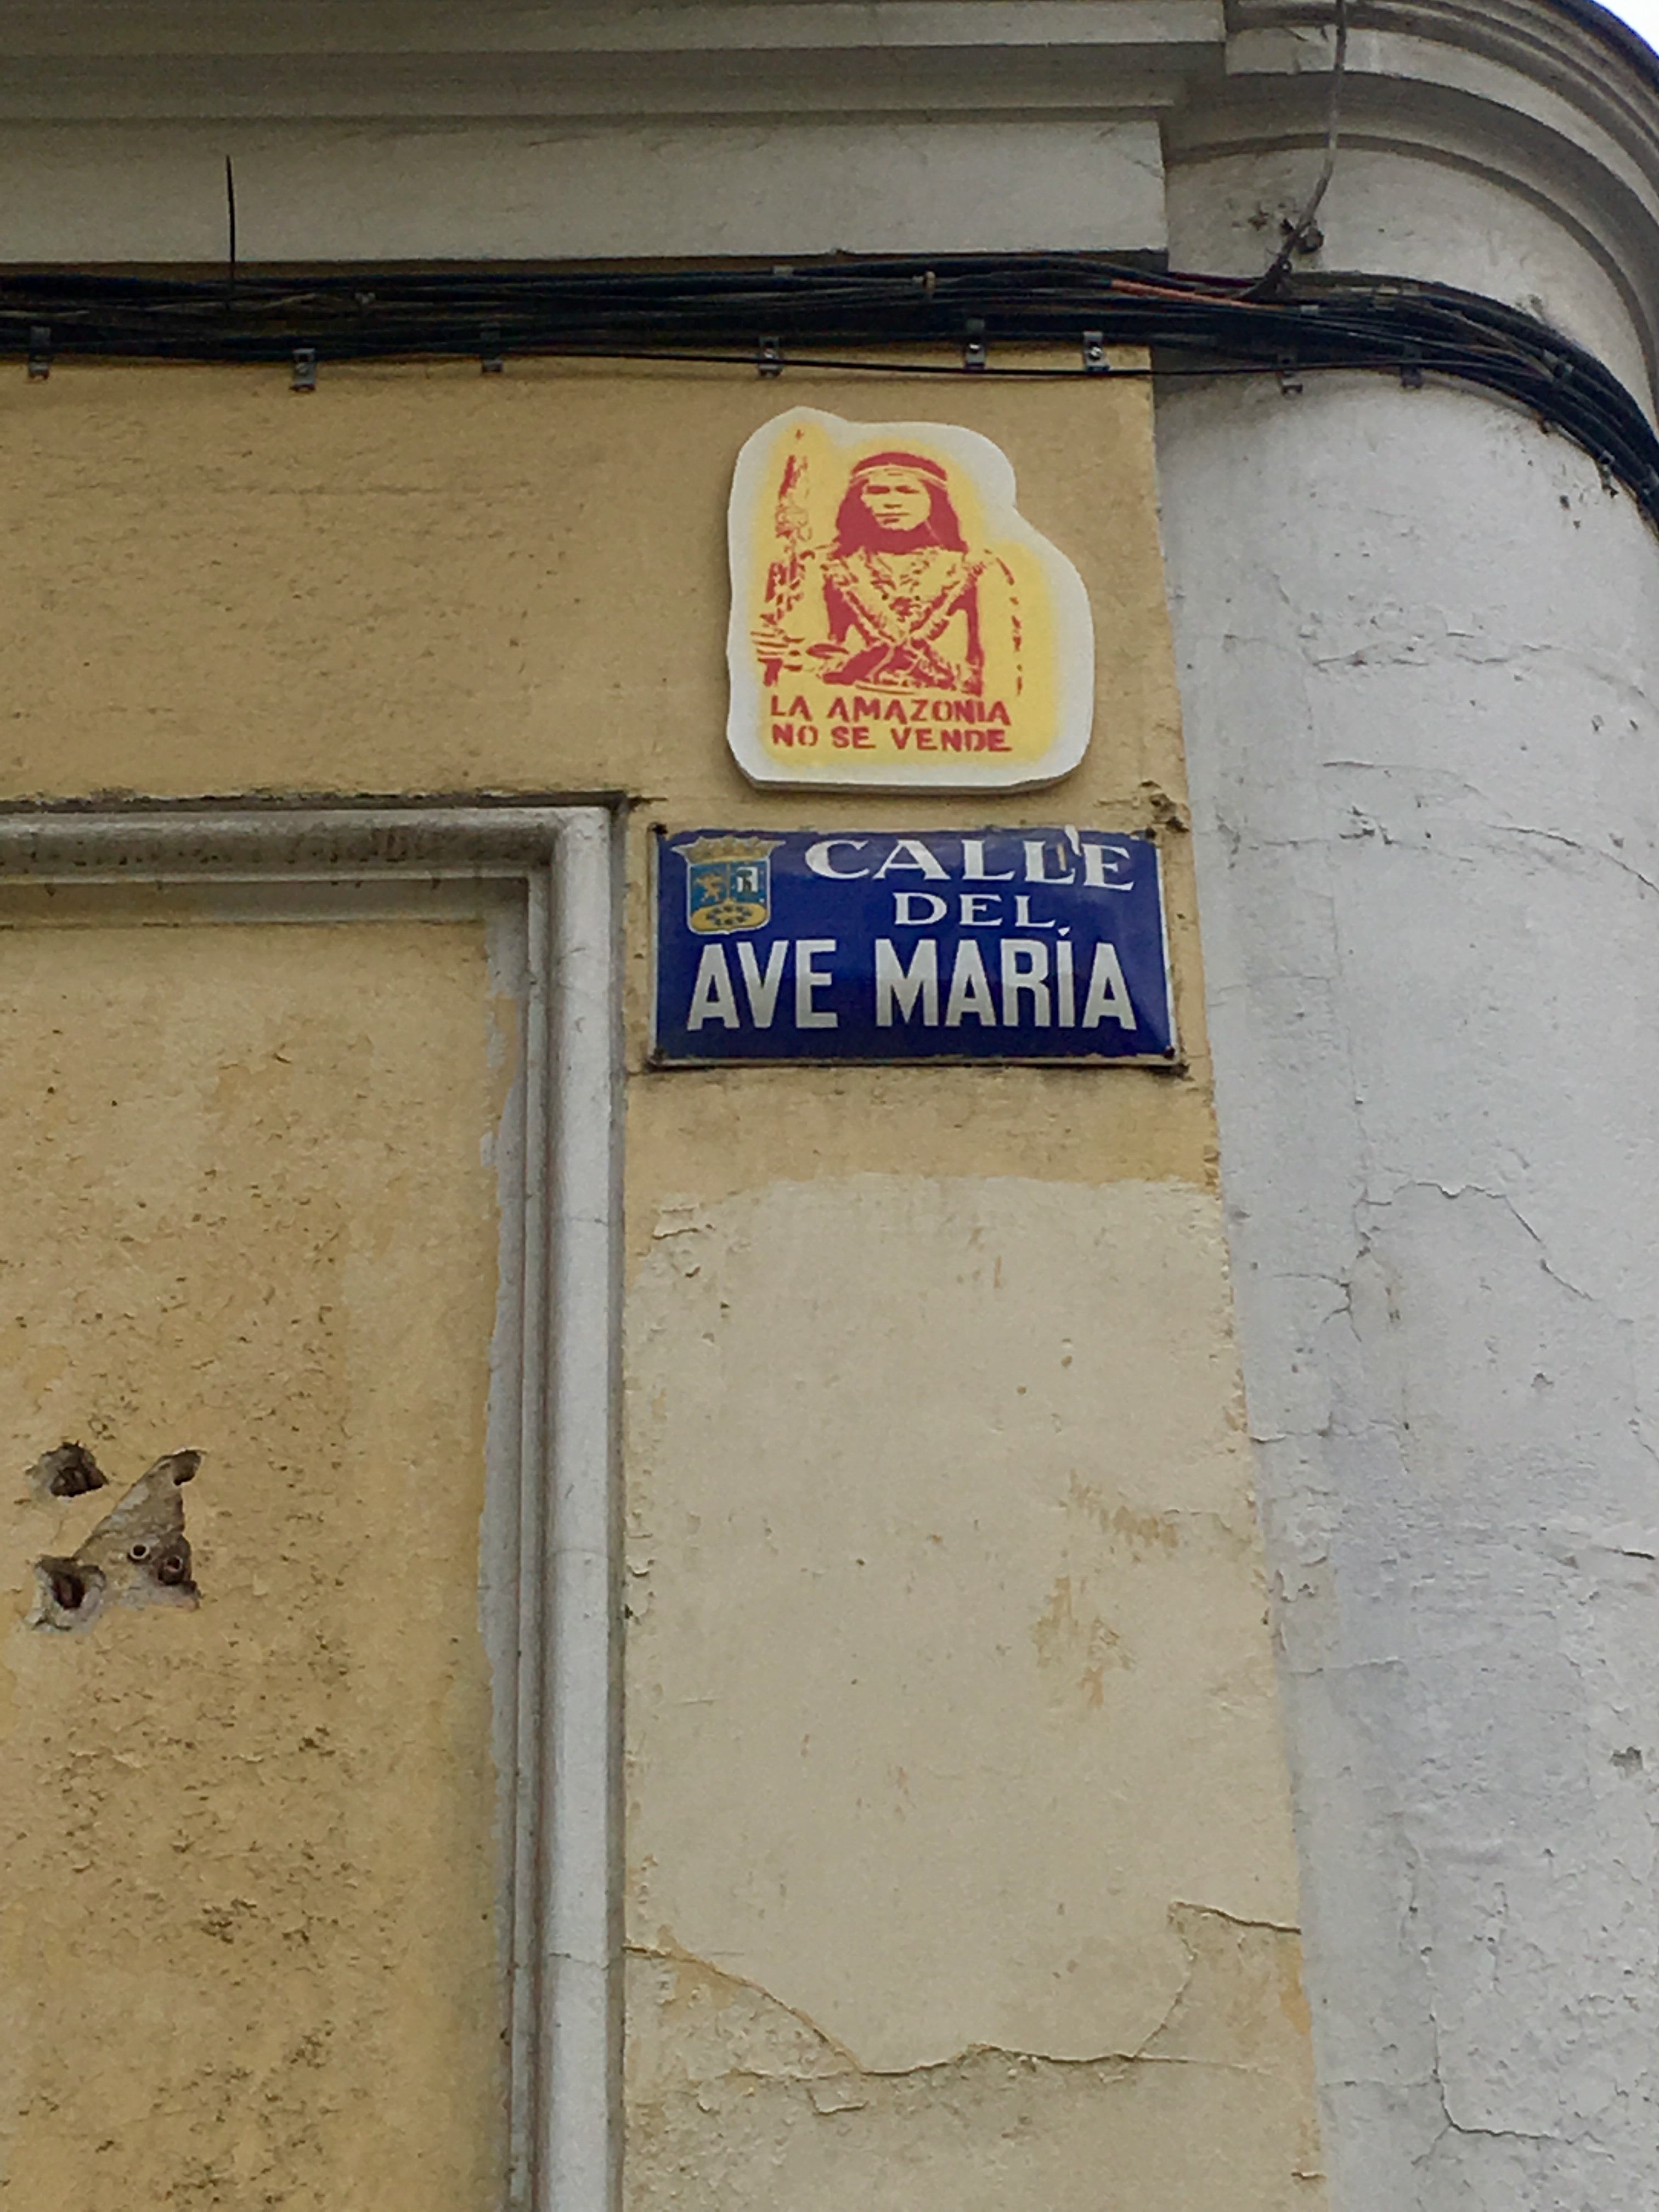 The name of the street 'Ave María' juxtaposed with an artwork stating 'the Amazon will not be Sold'